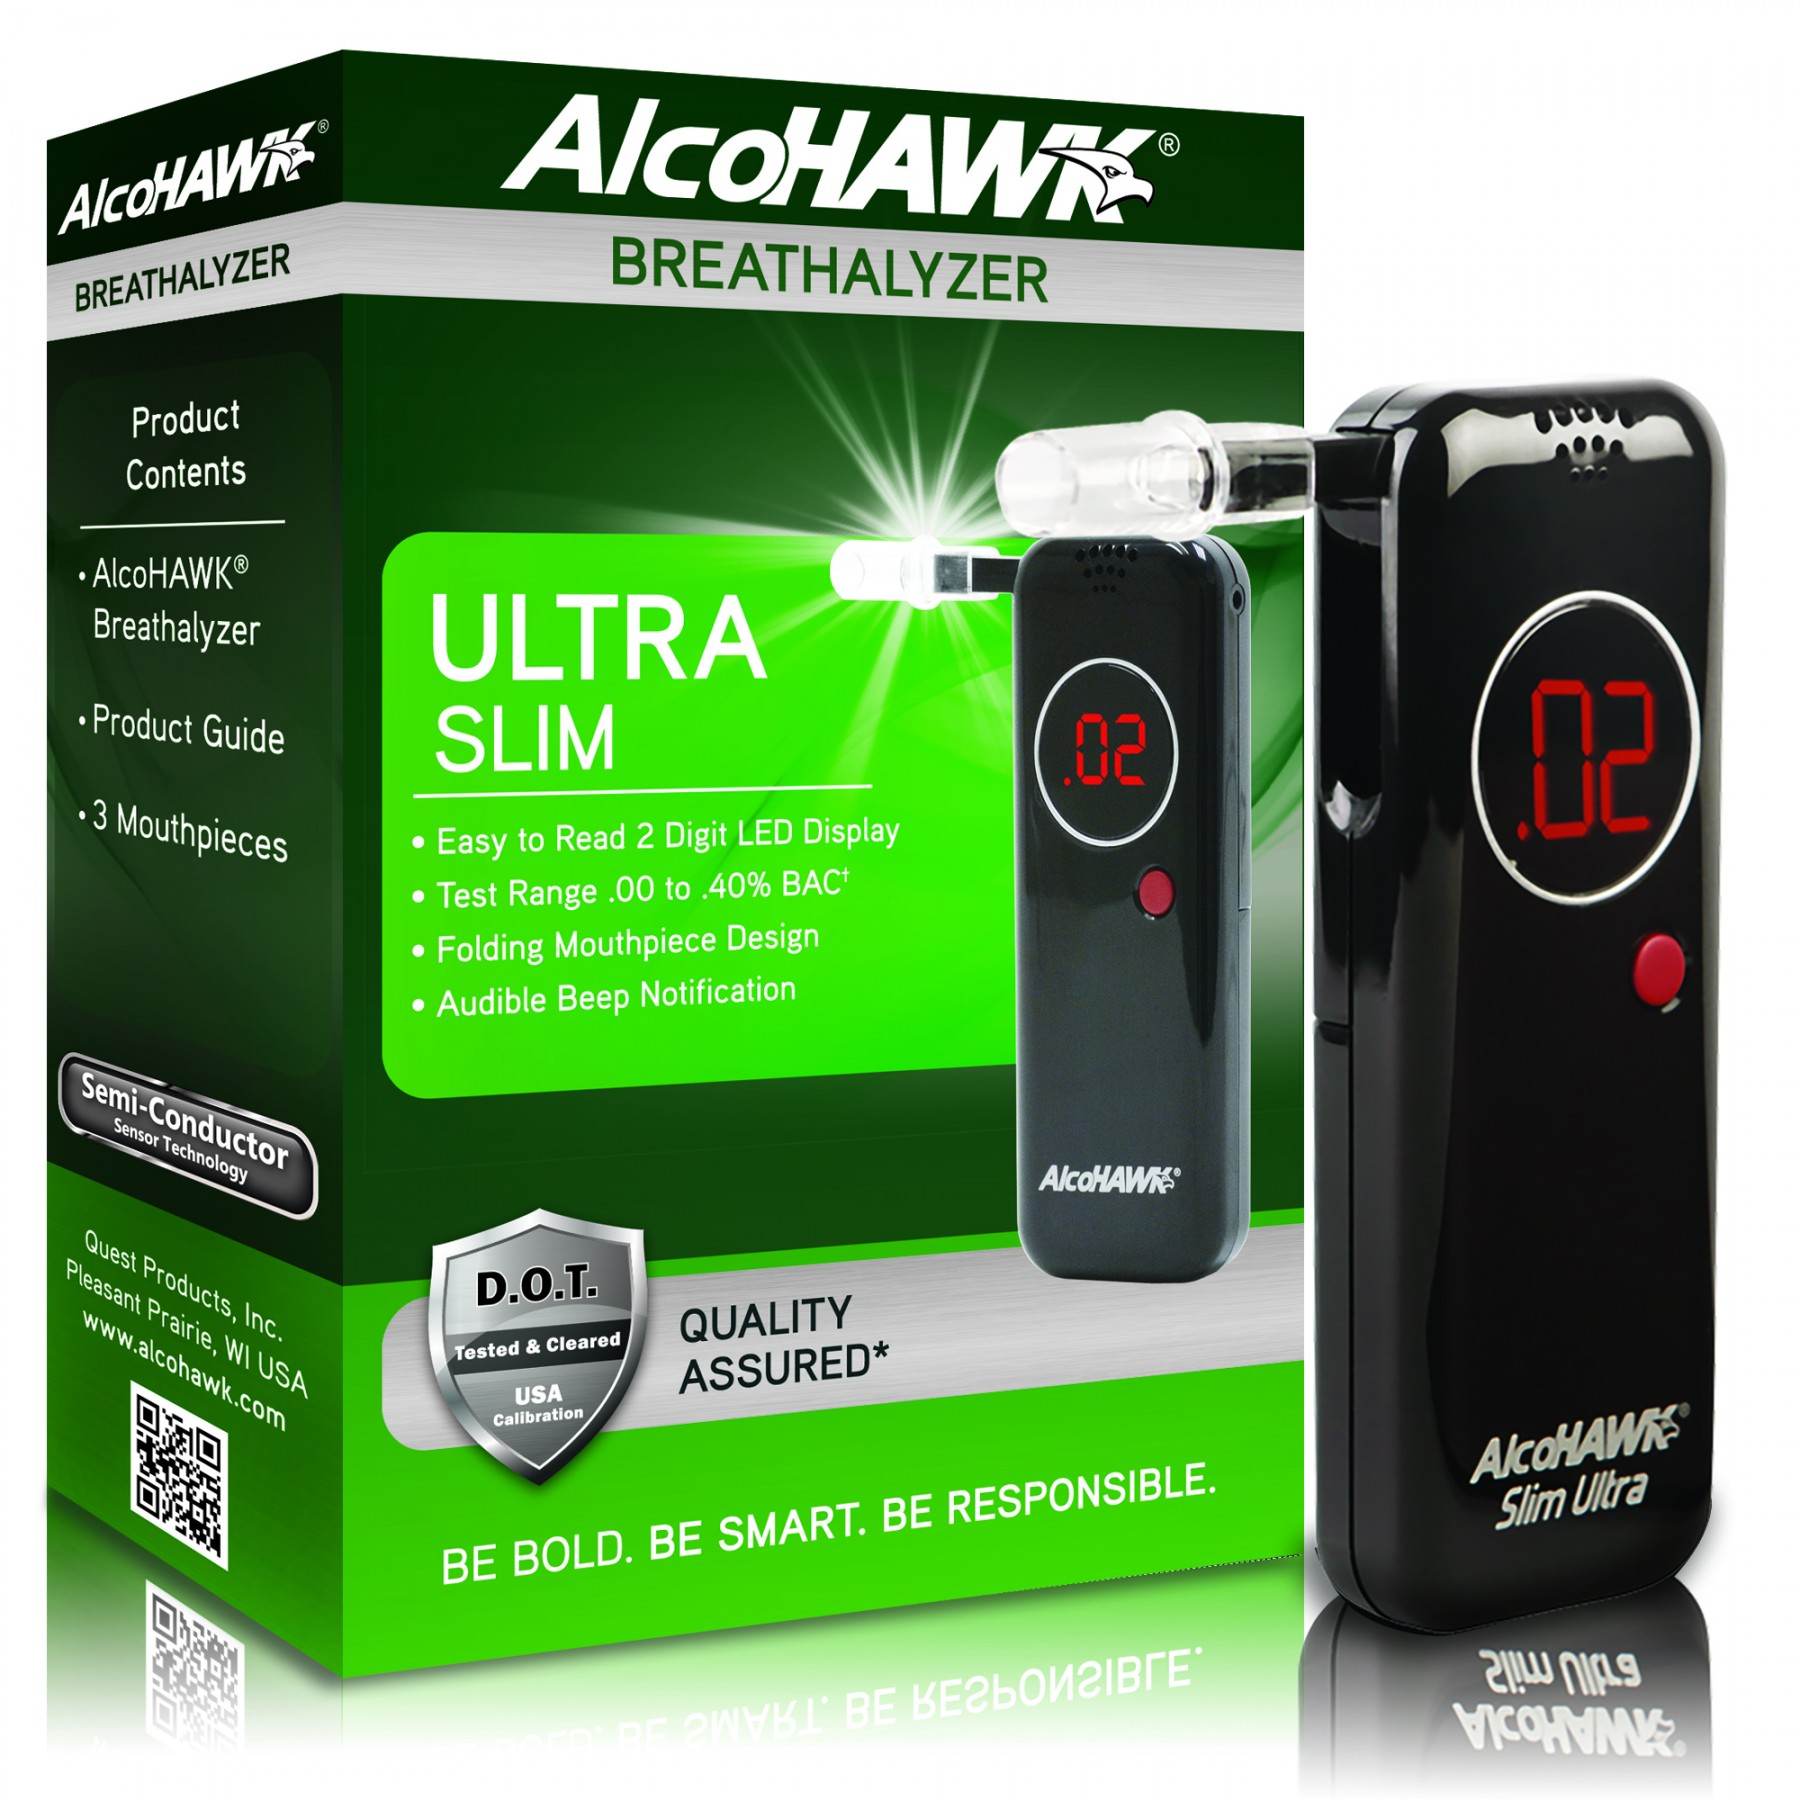 AlcoHAWK Ultra Slim Breathalyzer